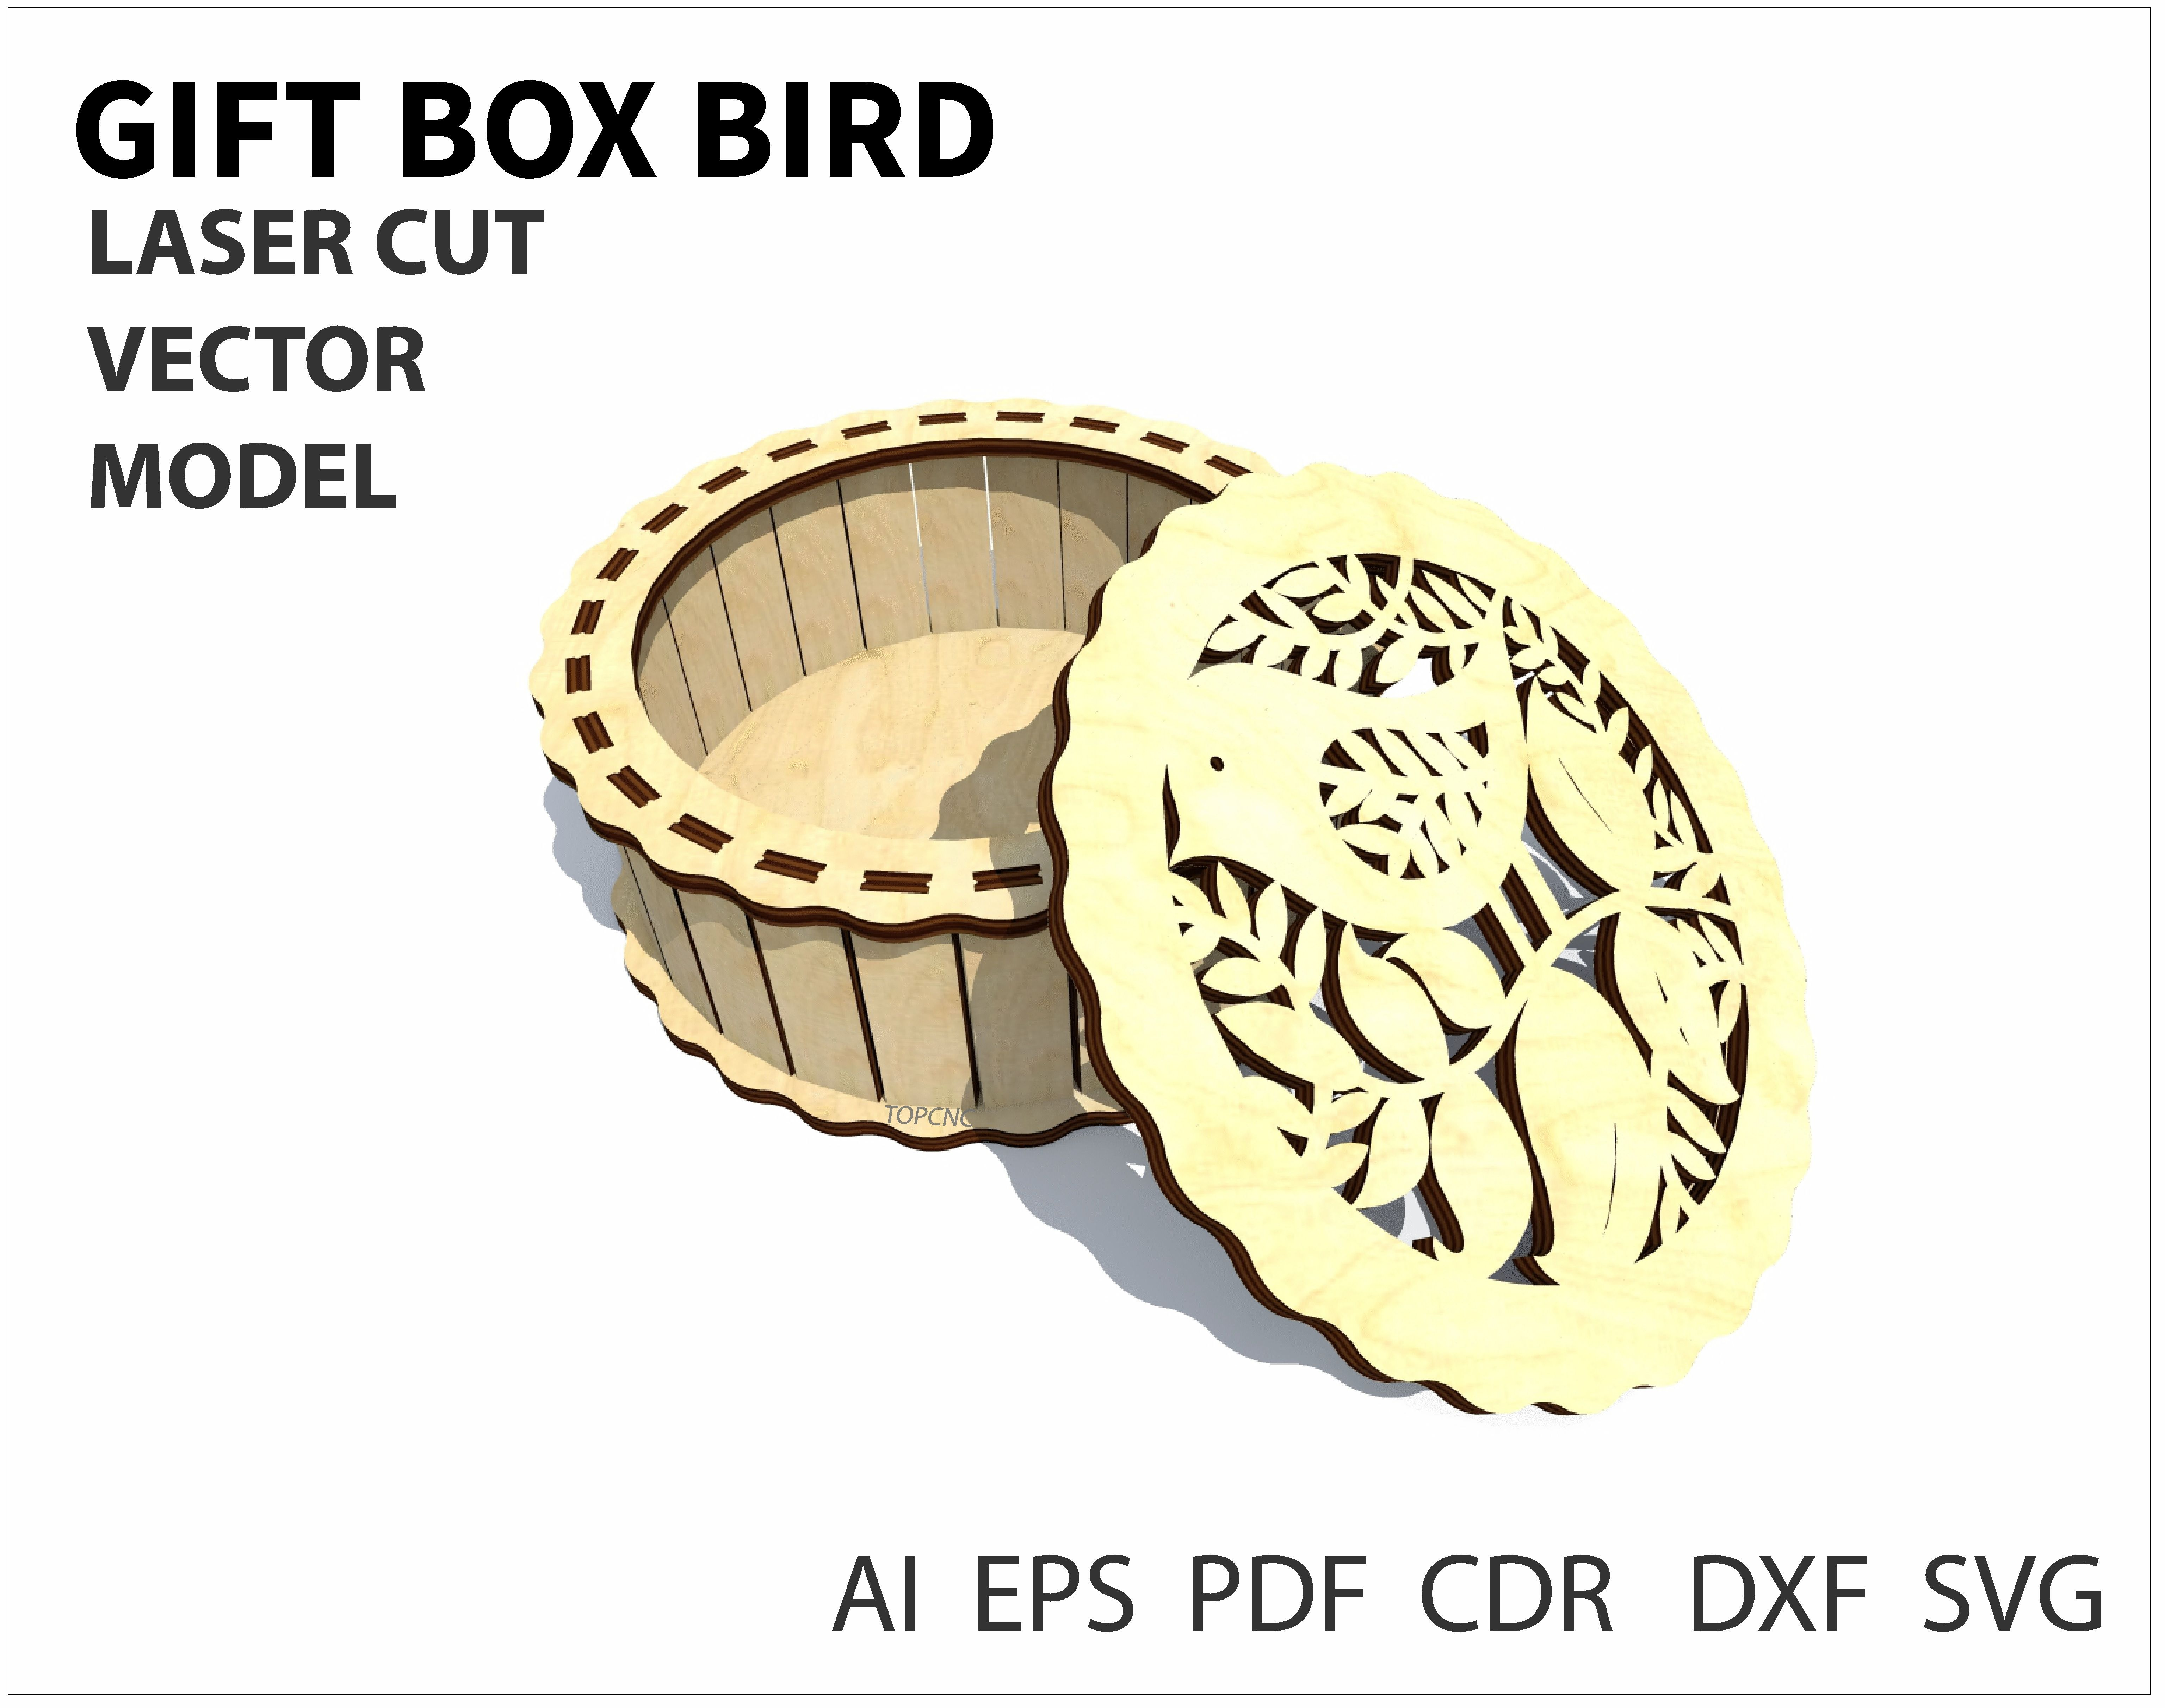 Geometric Bird Shaped Gift Box Plans for CNC Router Laser Cutting